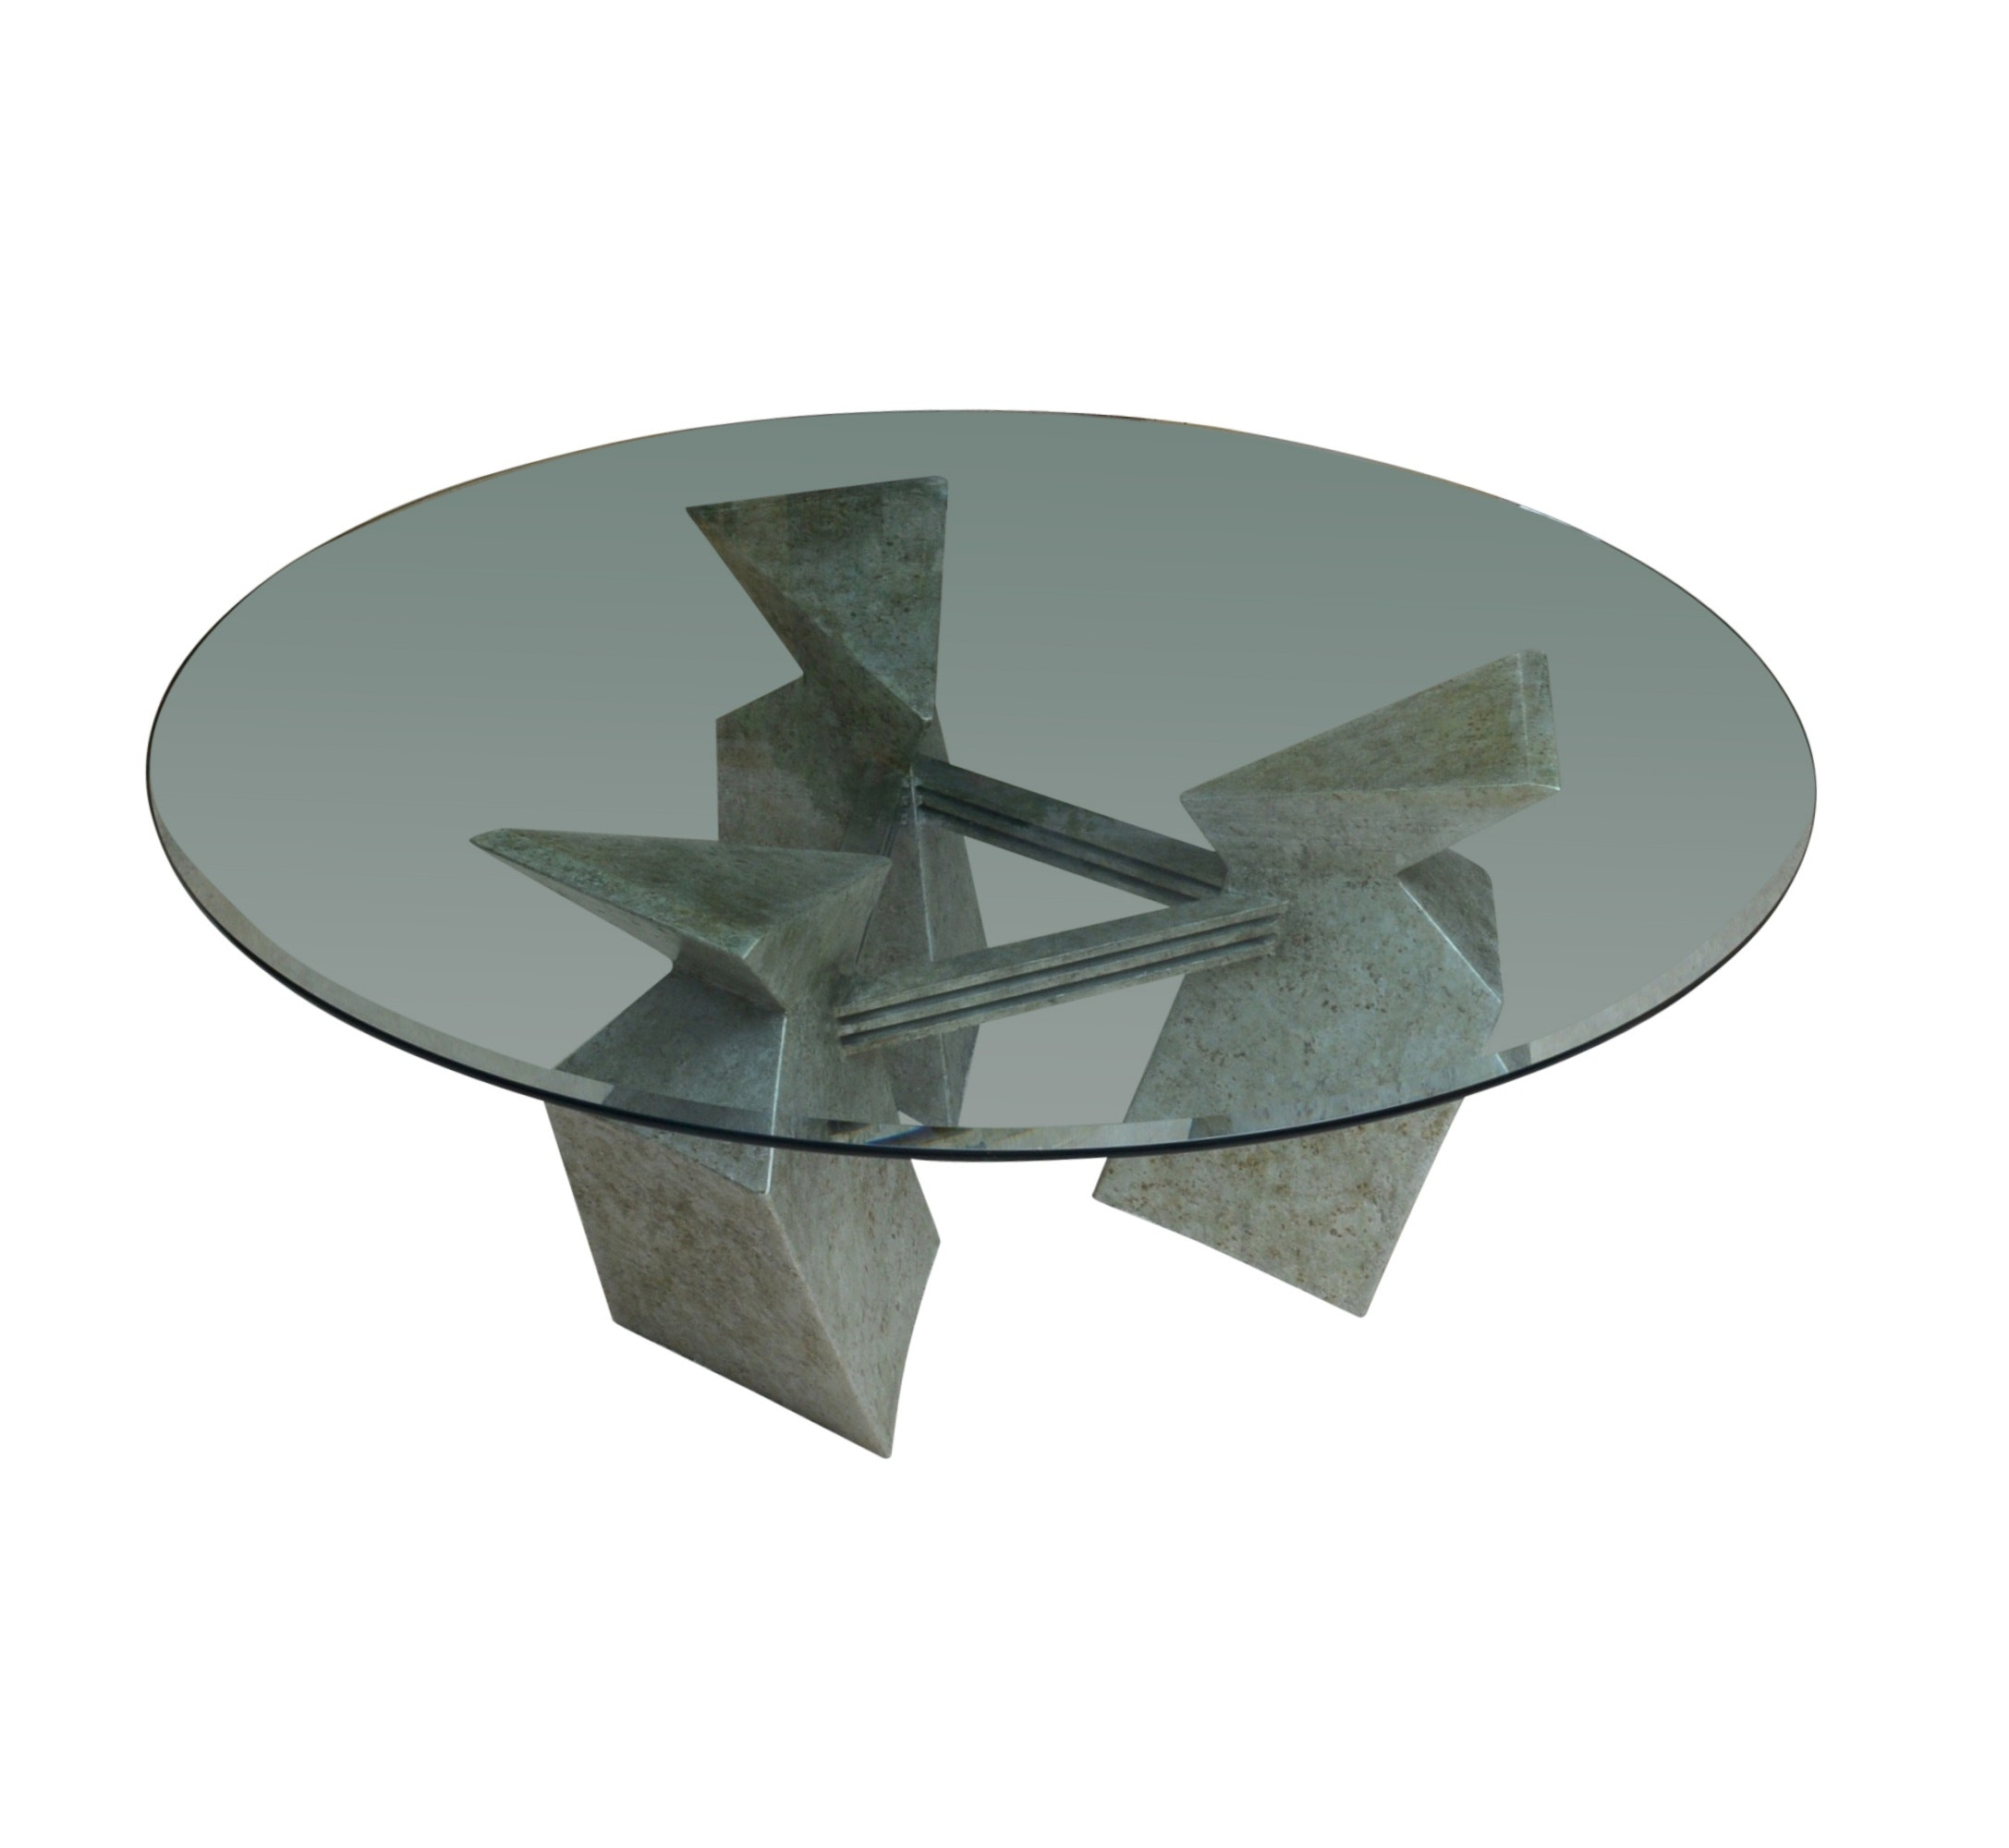 Detroit Steel Artisan Dining Table with Beveled Glass Top